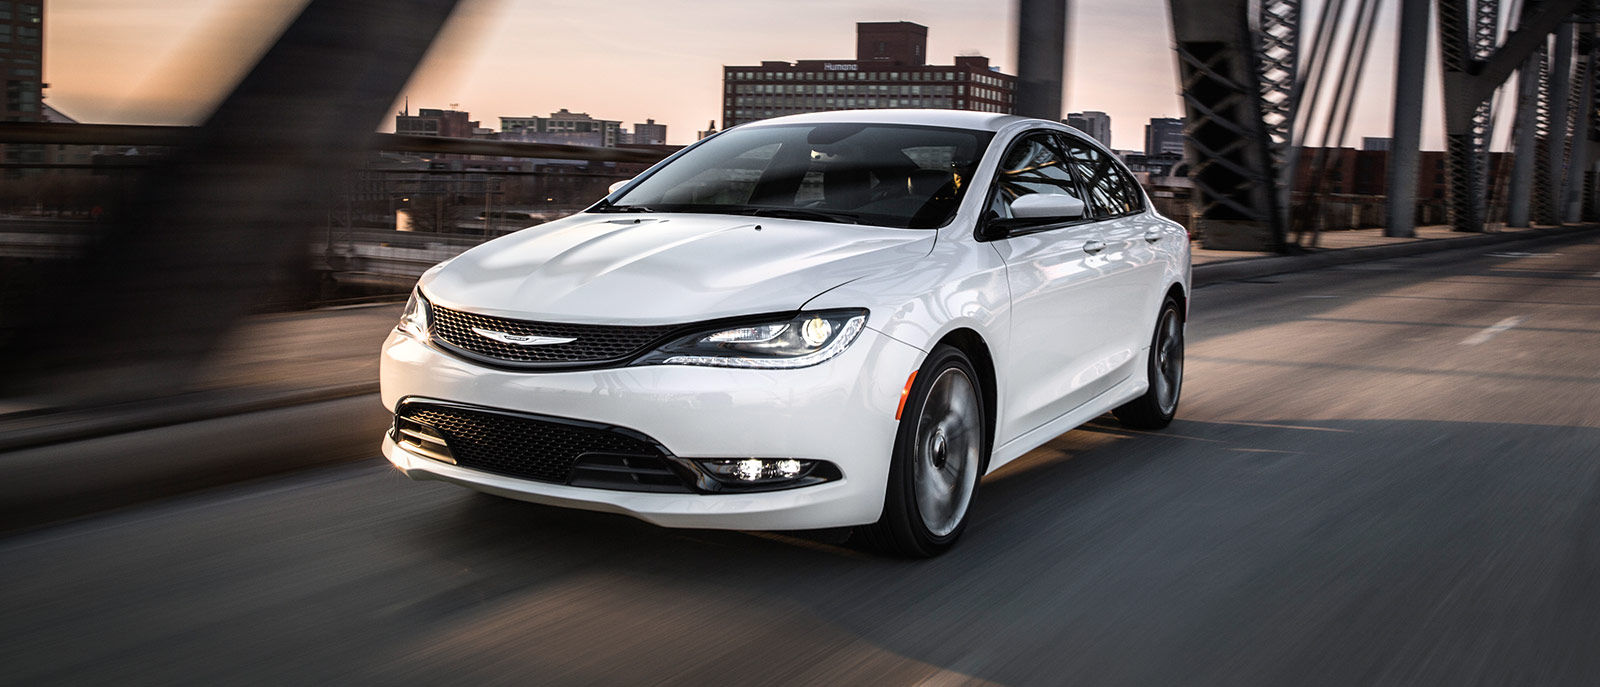 Royal Gate Dodge >> 2016 Chrysler 200 | Royal Gate Dodge Chrysler | St. Louis, MO